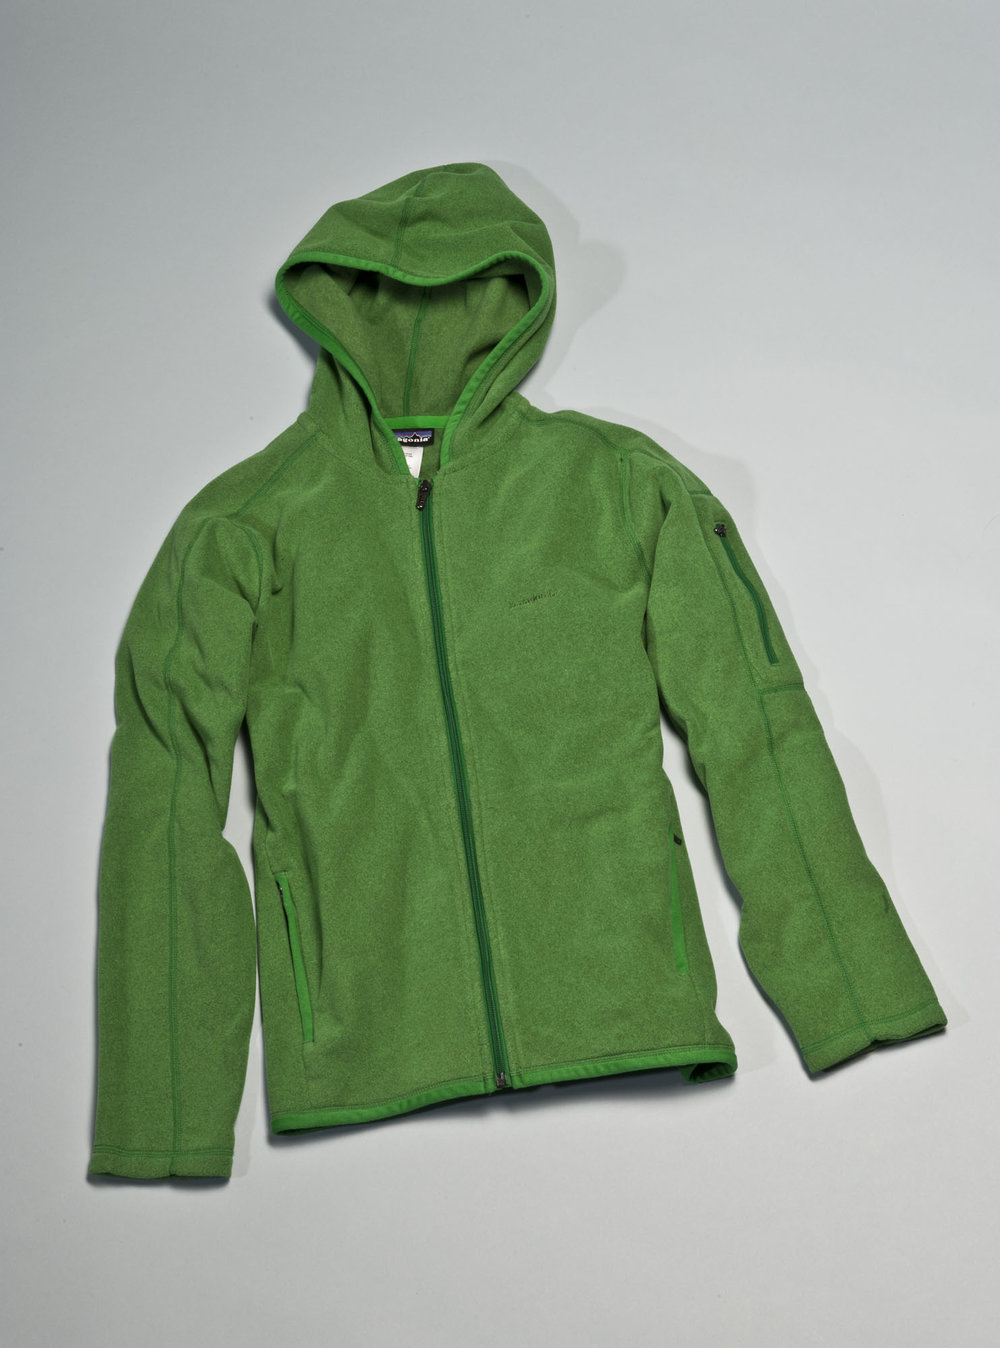 Patagonia, laine polaire Aravis Hoody, 2012 Polyester